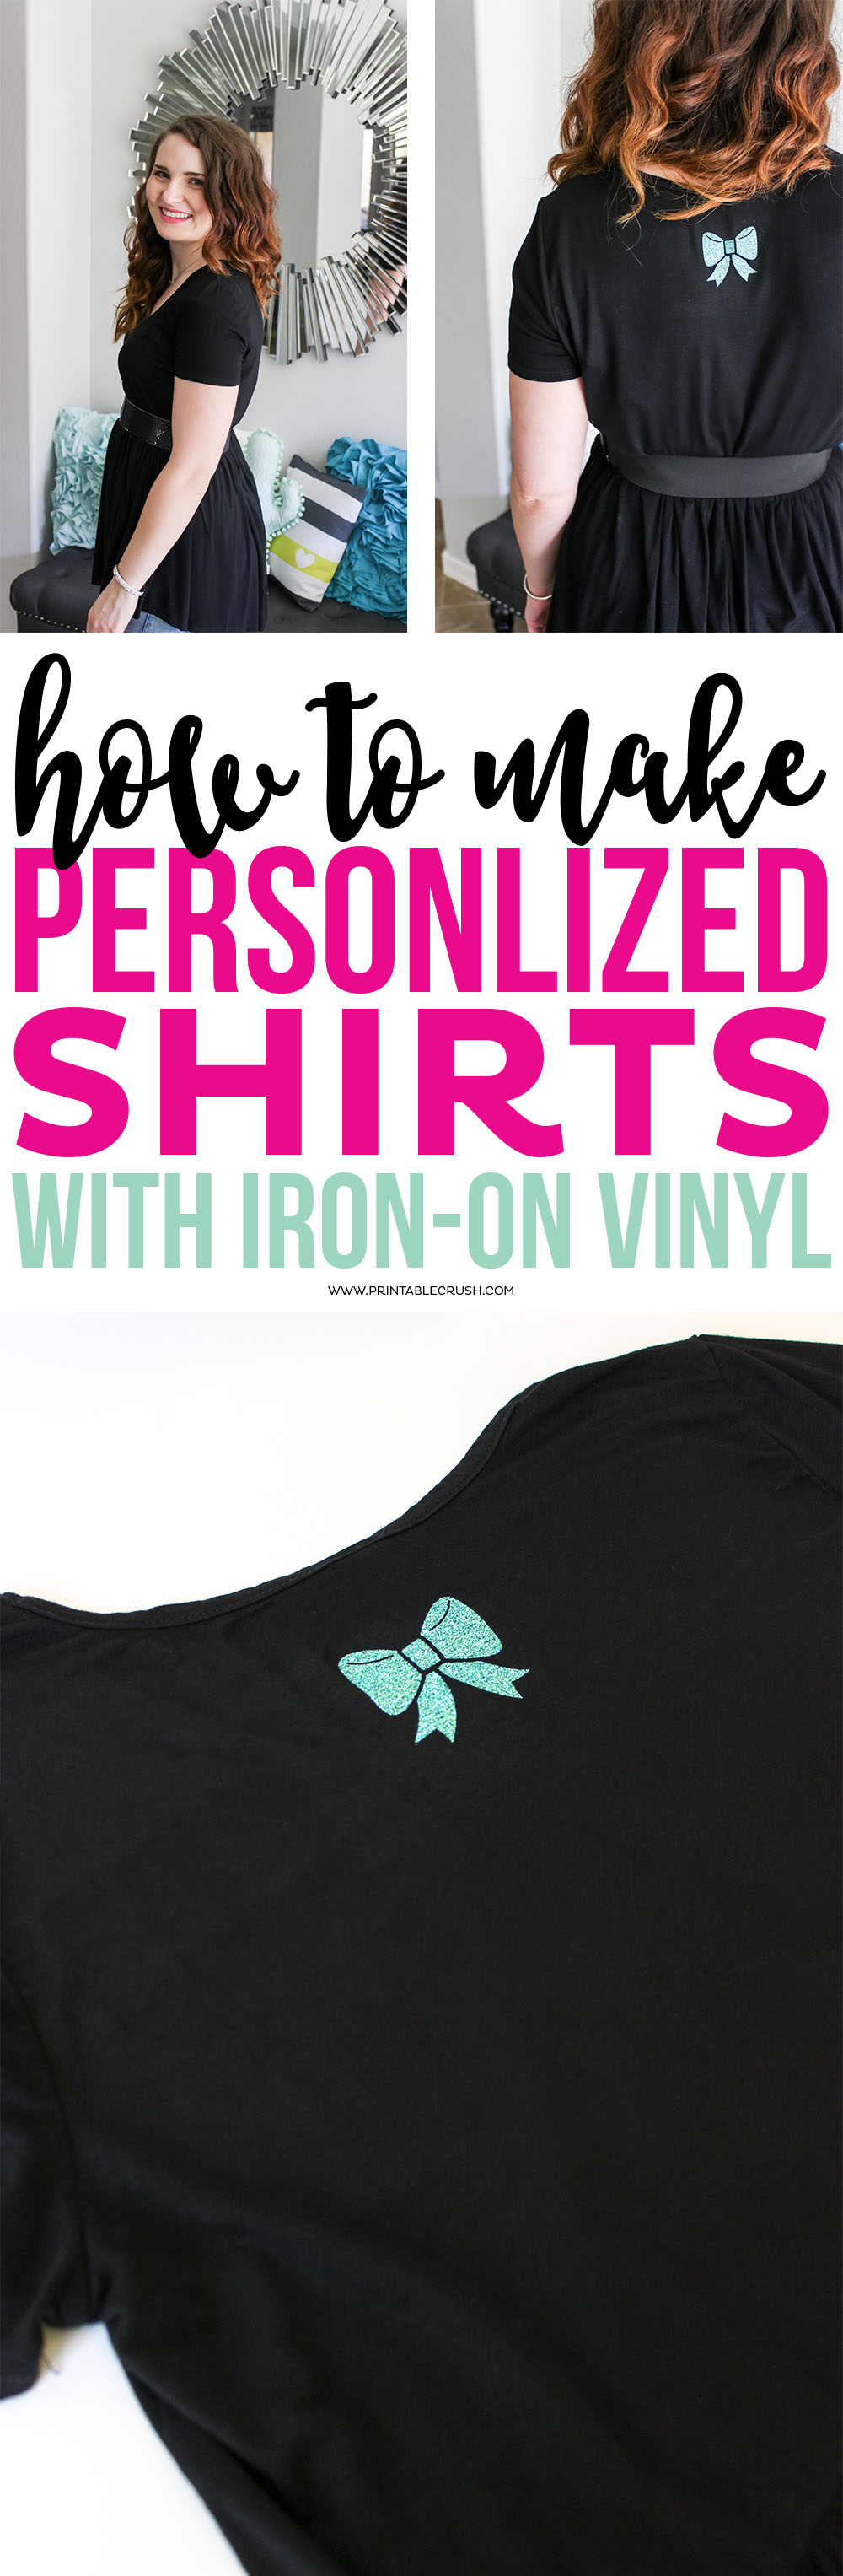 Long collage with woman wearing black shirt with iron on vinyl in teal